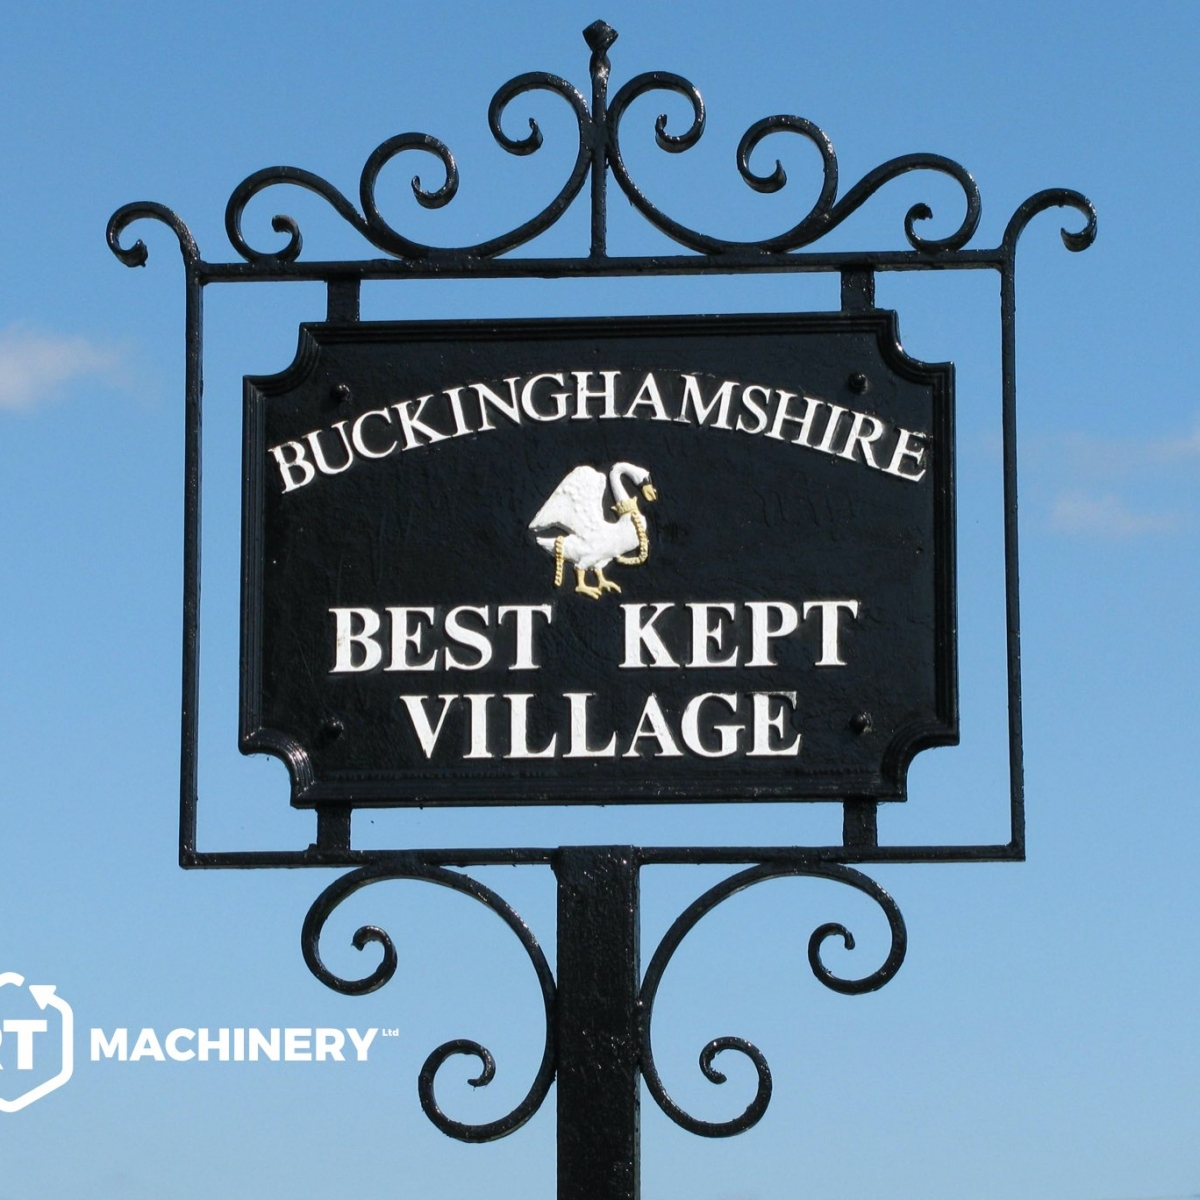 Buckinghamshire's Best Kept Village